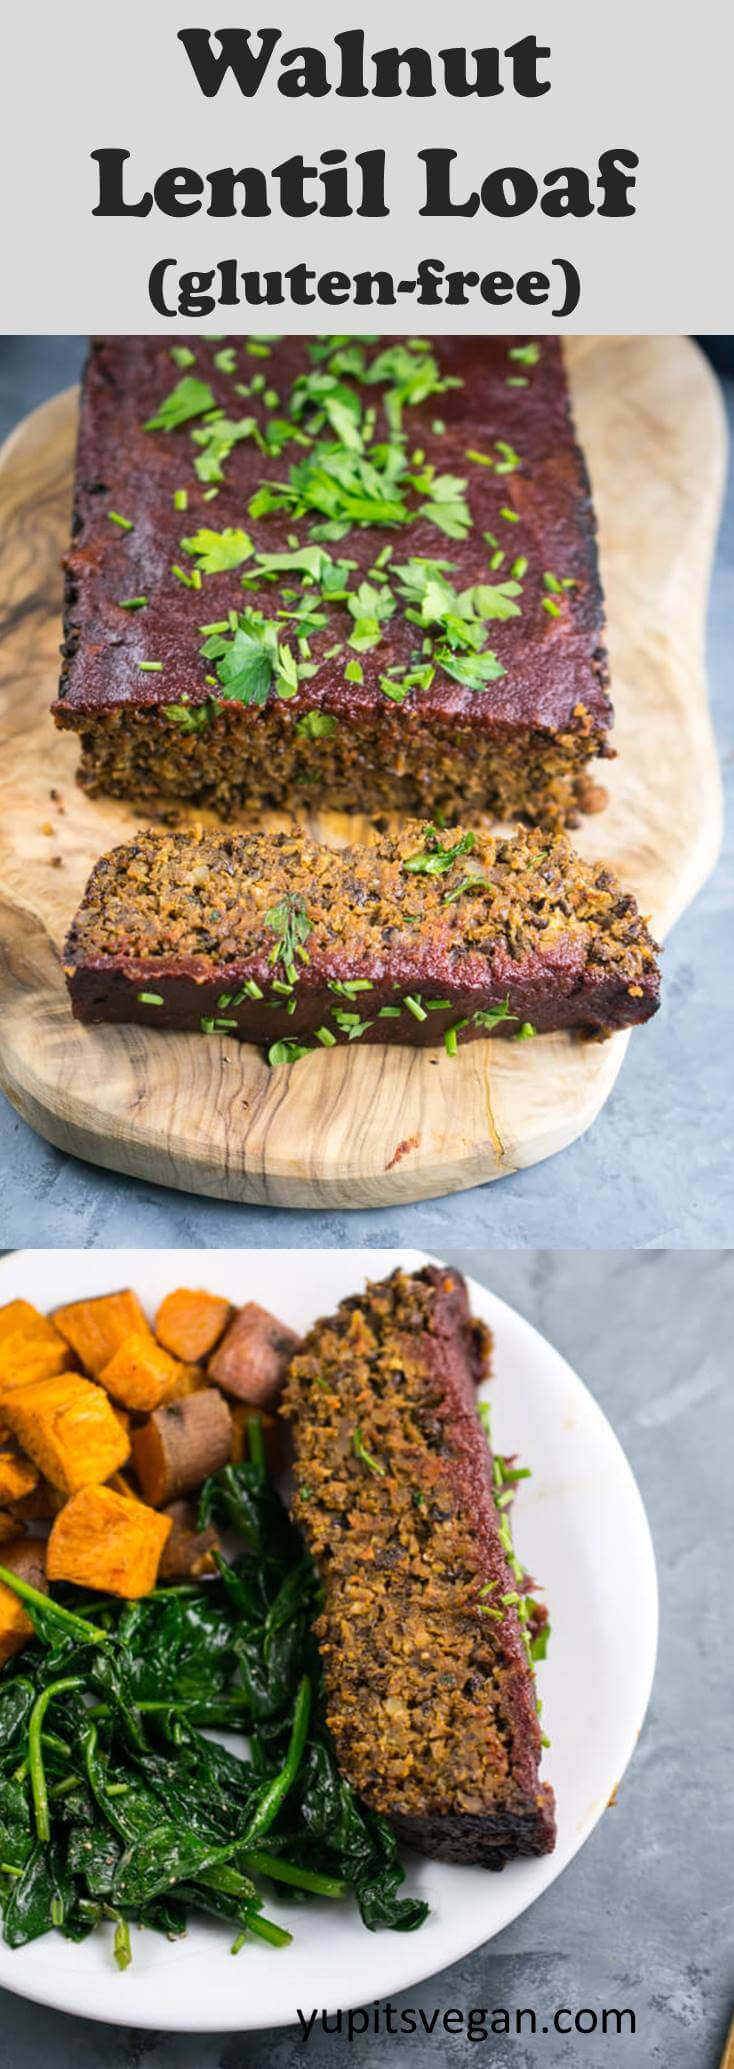 Walnut Lentil Loaf: A naturally gluten-free, vegan meatloaf option for Thanksgiving. Lentil loaf made with walnuts, lentils, chickpeas, rice, and savory seasoning with a tomato apple cider glaze.